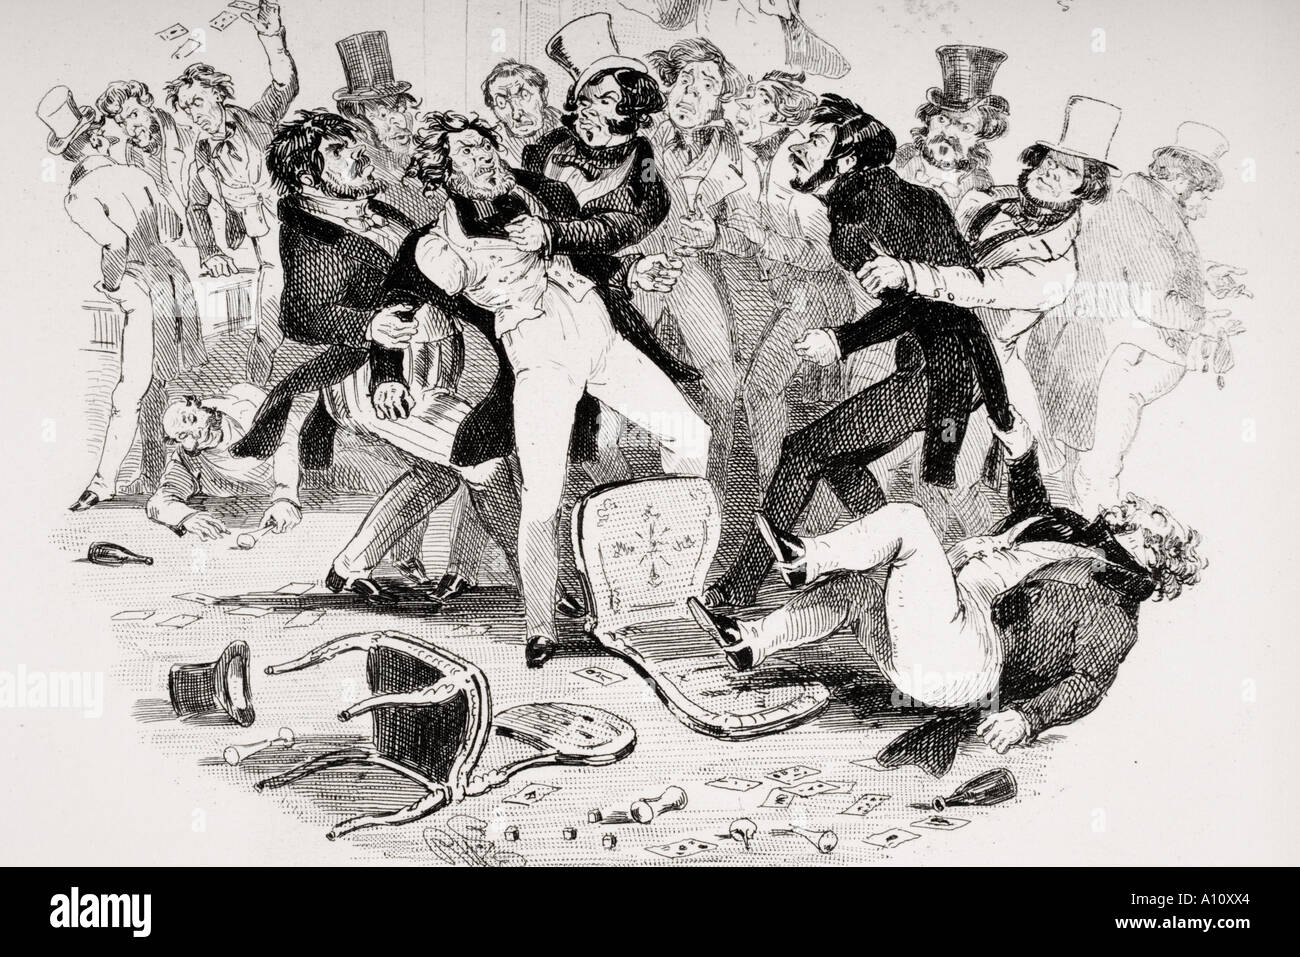 Charles Dickens novel Nicholas Nickleby - Stock Image